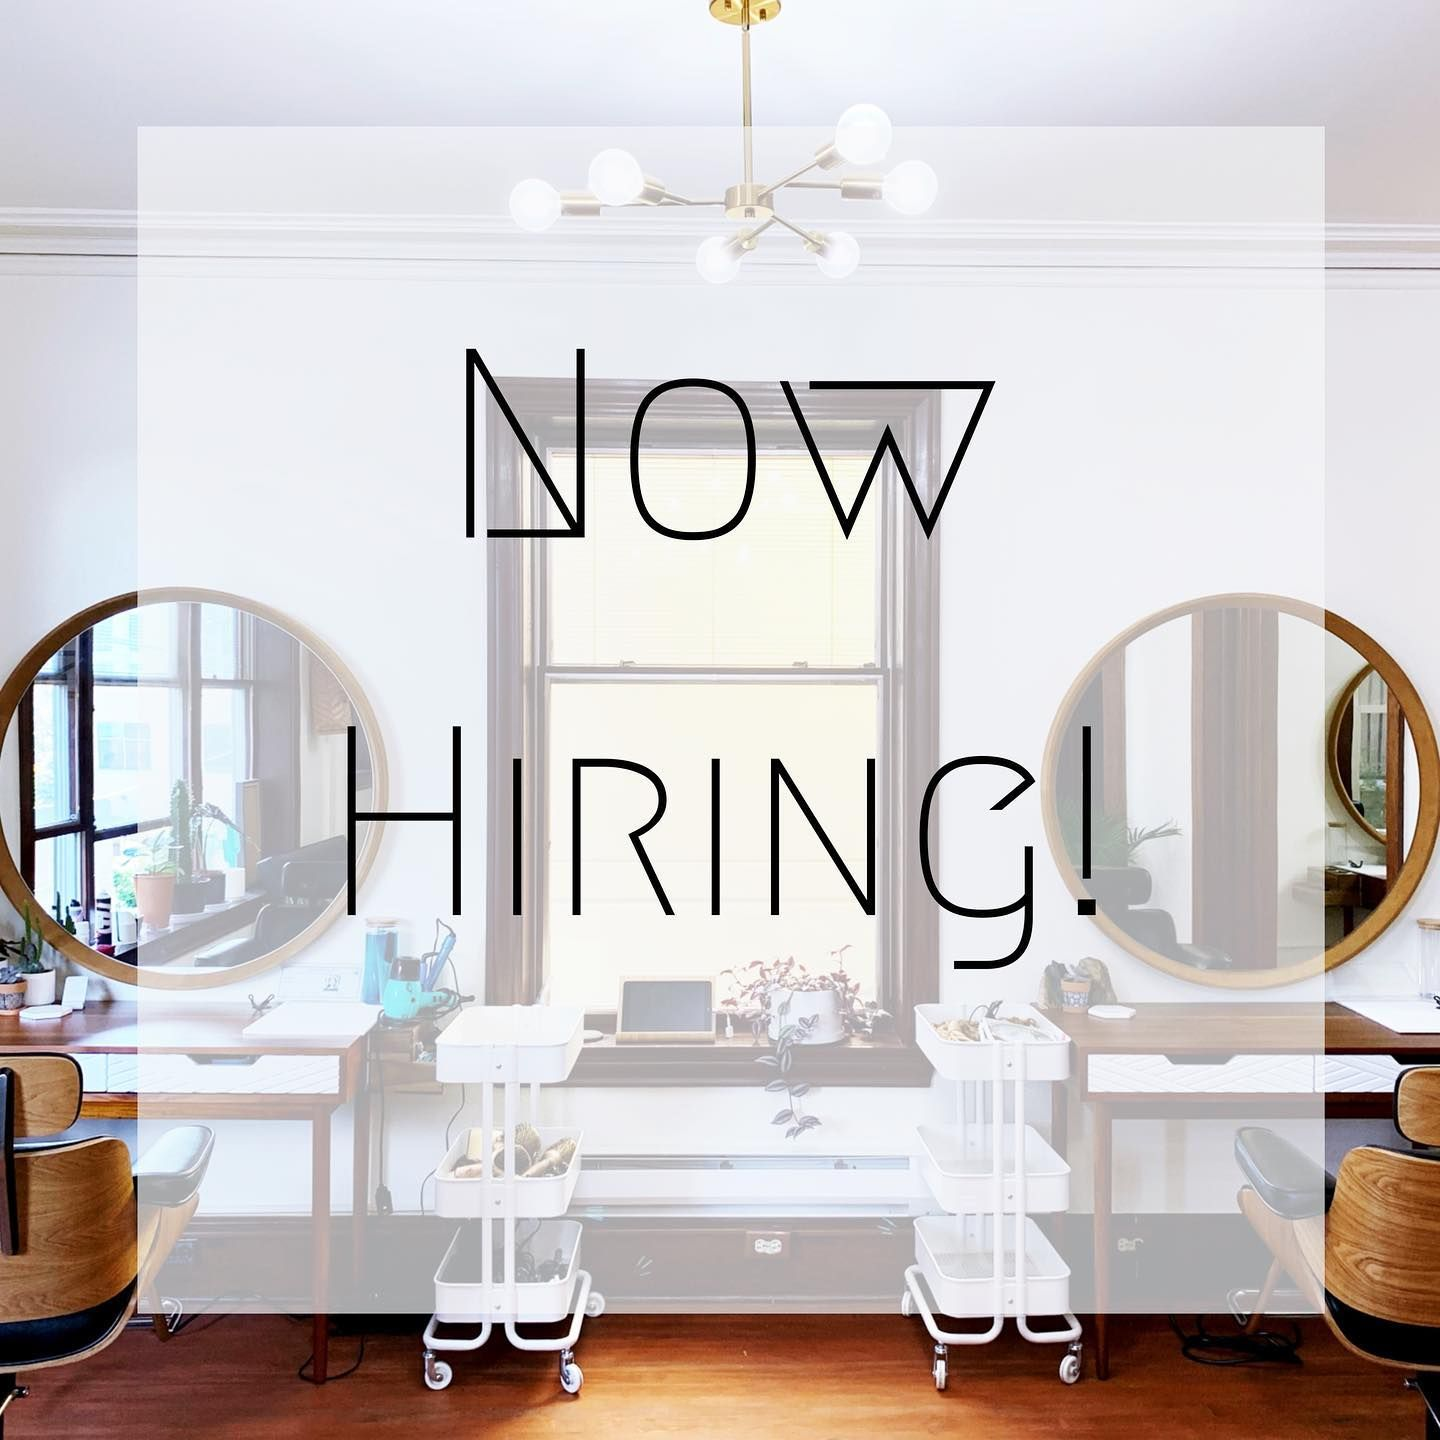 Cedarhouse Hair Studio Is Now Hiring Looking For Talented Like Minded Individuals To Join The Cedarhousehair Team Part T In 2020 Home Decor Hair Studio Ghost Chair